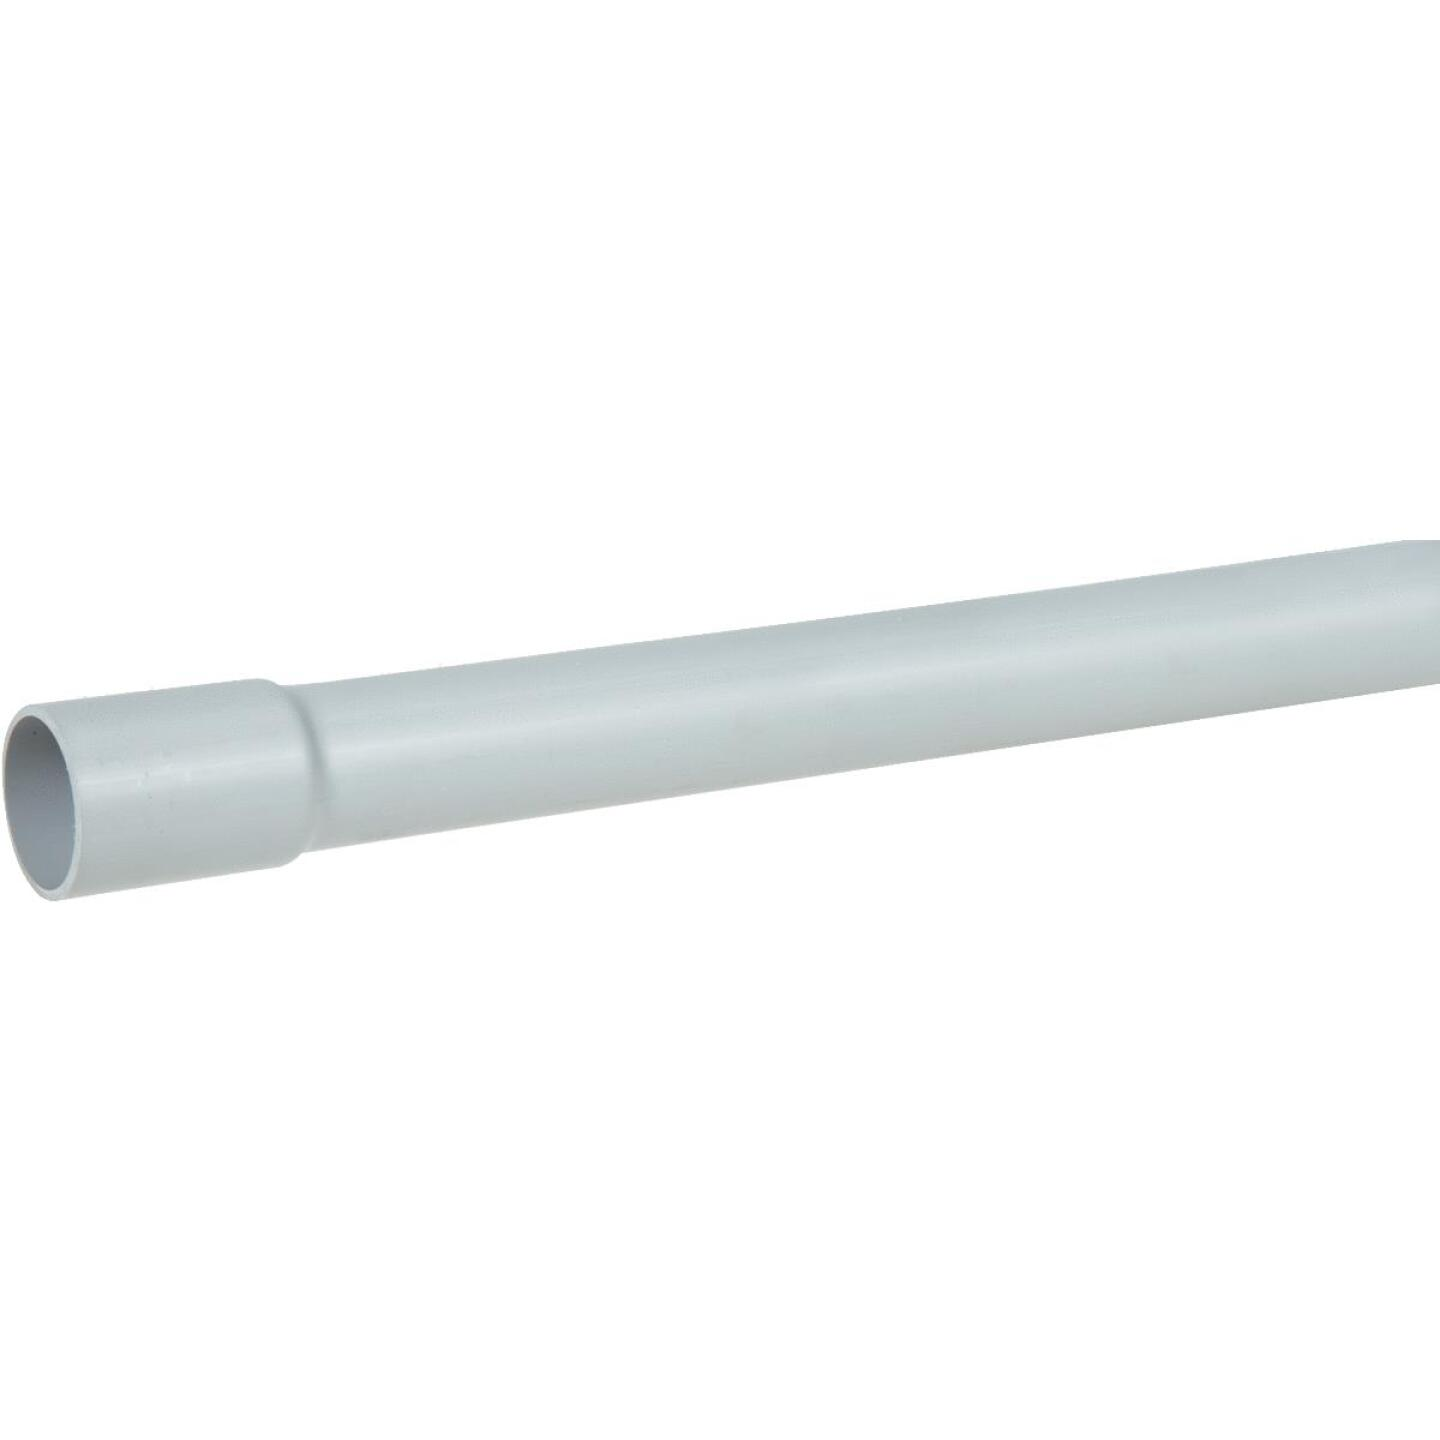 Allied 3/4 In. x 10 Ft. Schedule 80 PVC Conduit Image 1